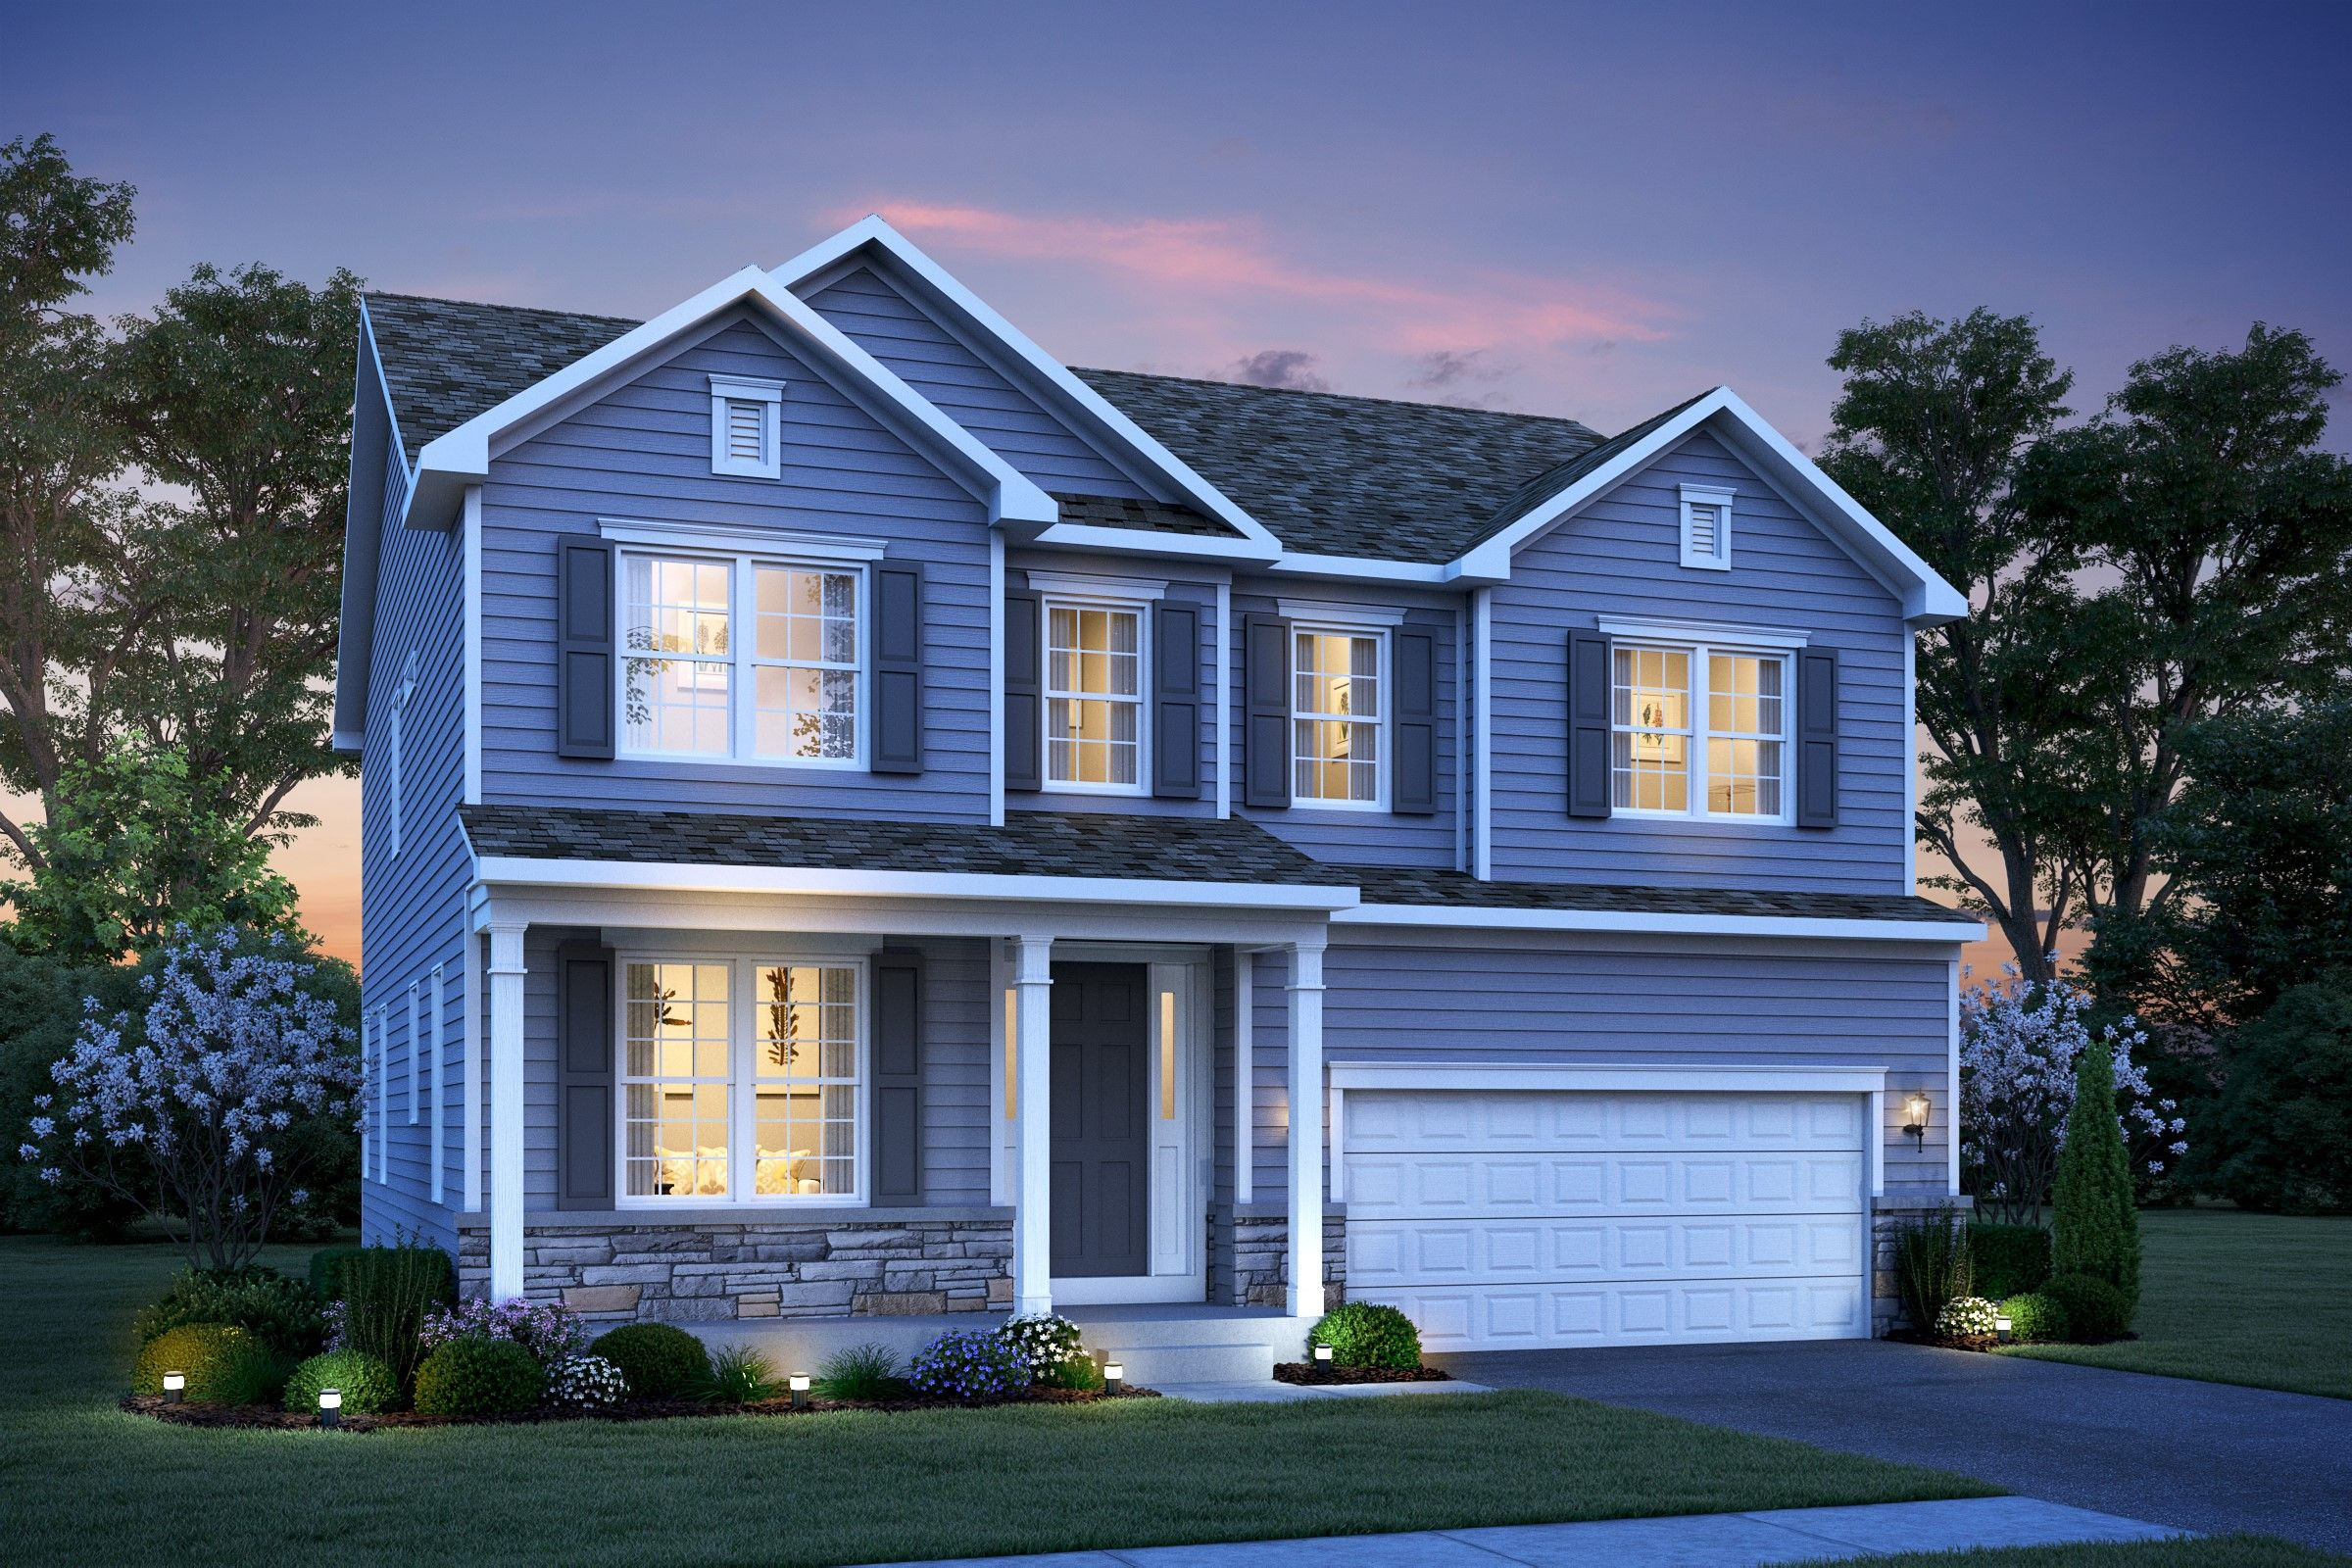 Single Family for Active at Meadow Brook At Hillsborough - Brookdale Passe Court Hillsborough, New Jersey 08844 United States